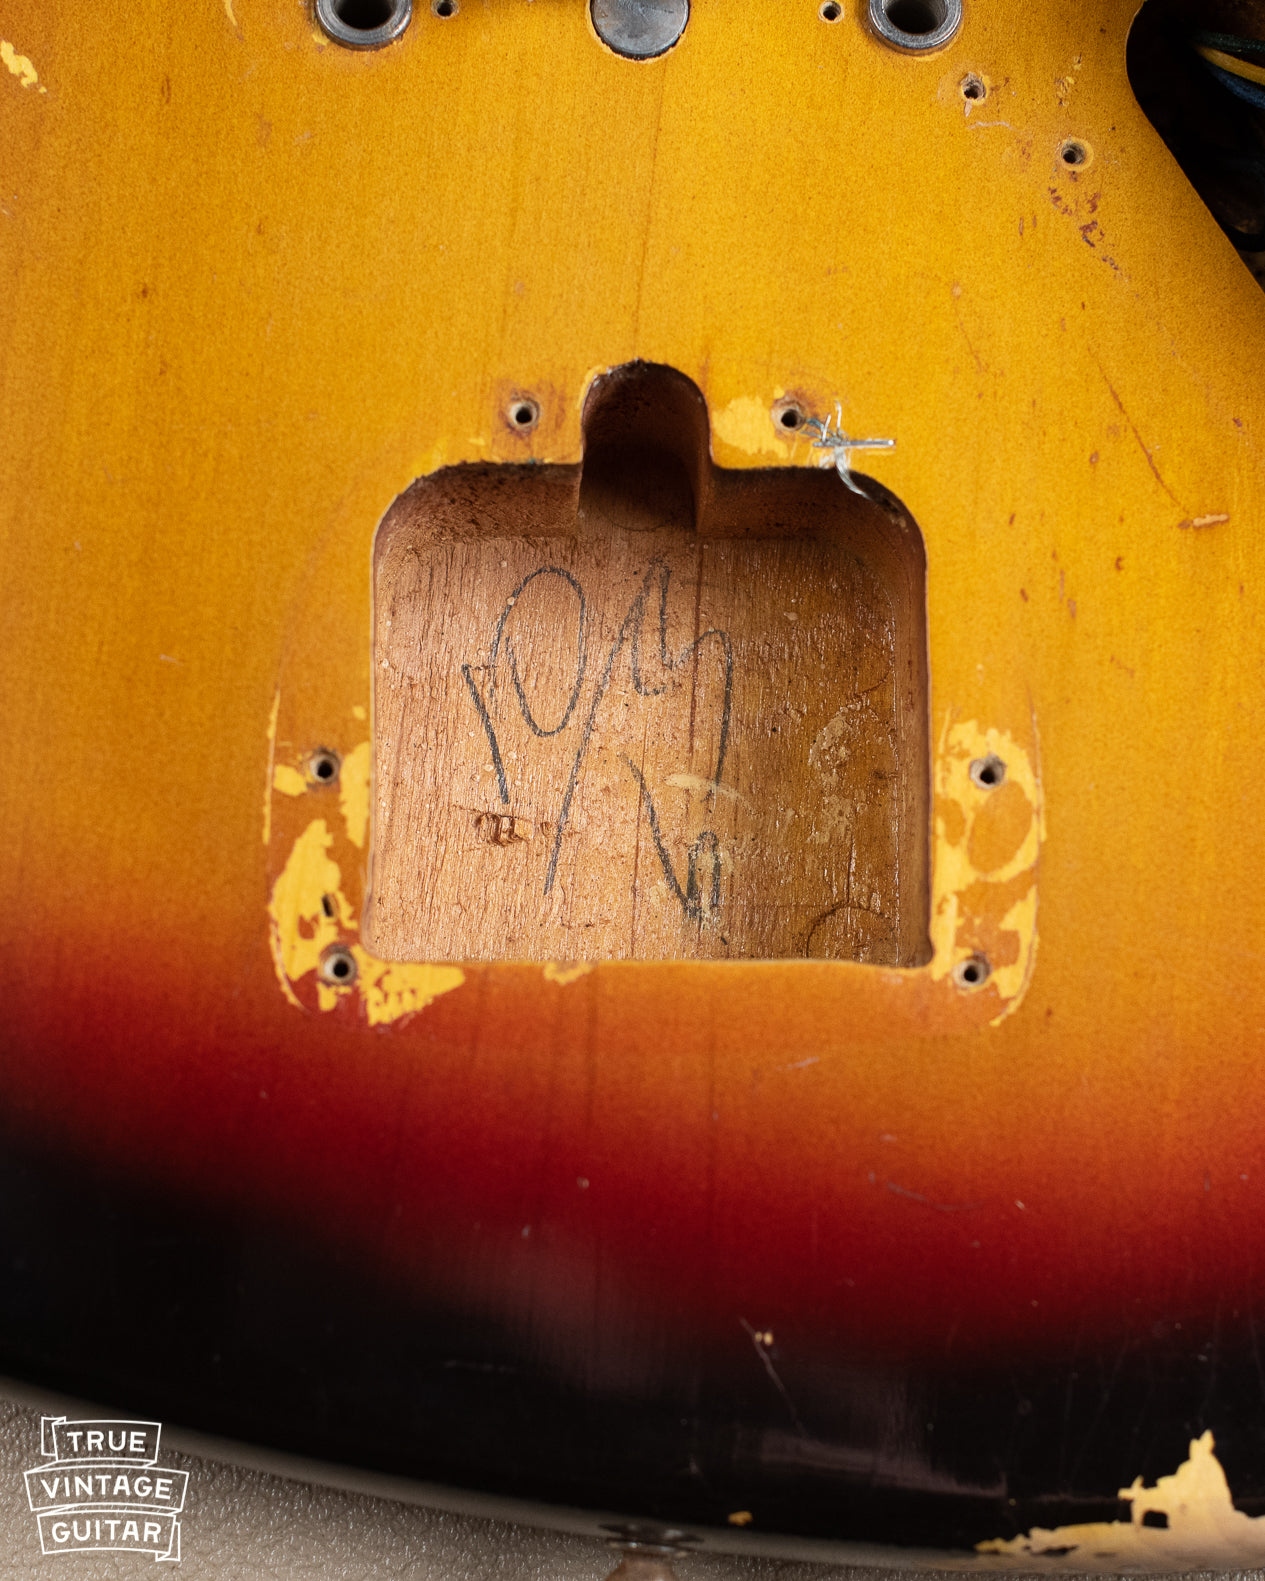 How to date a Fender Jaguar with pencil date marks